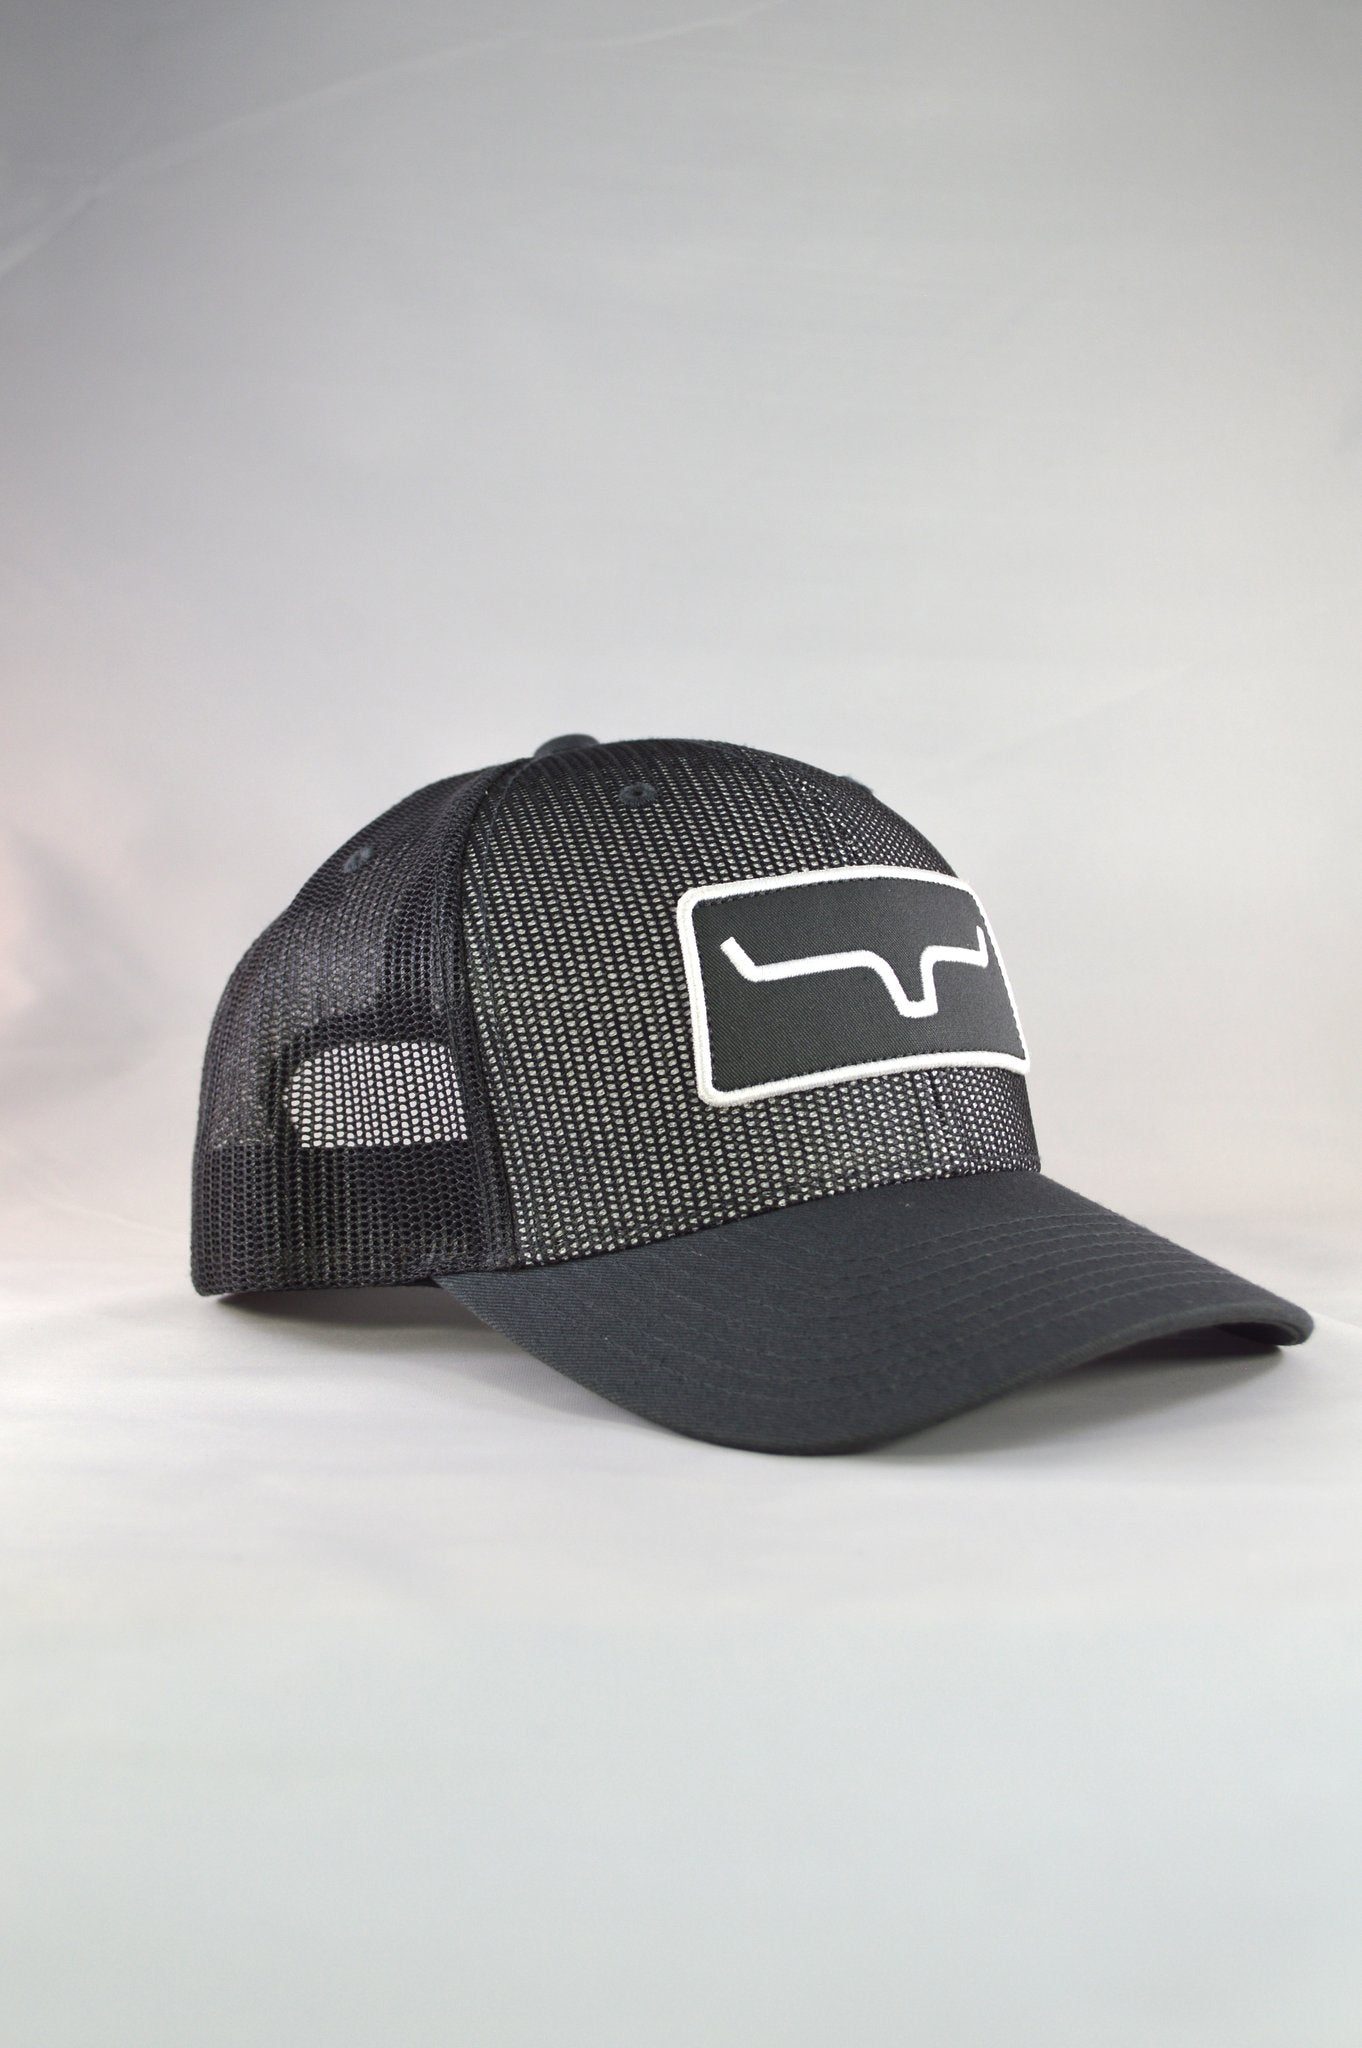 Kimes Ranch All Mesh Trucker Cap - Charcoal